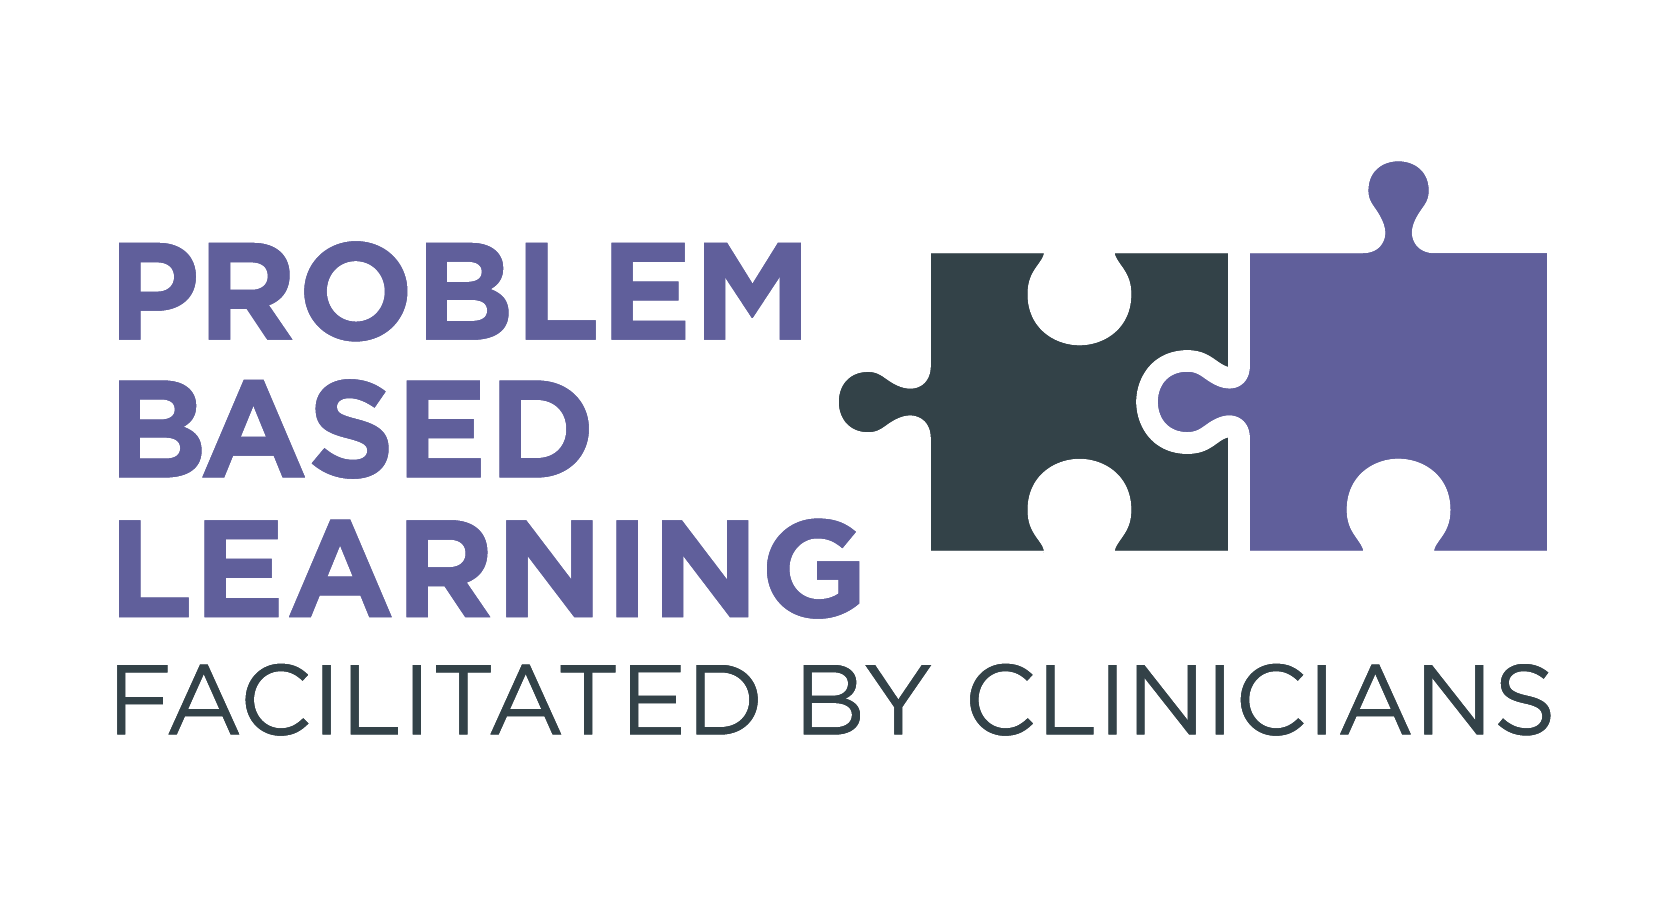 Problem based learning with clinicians